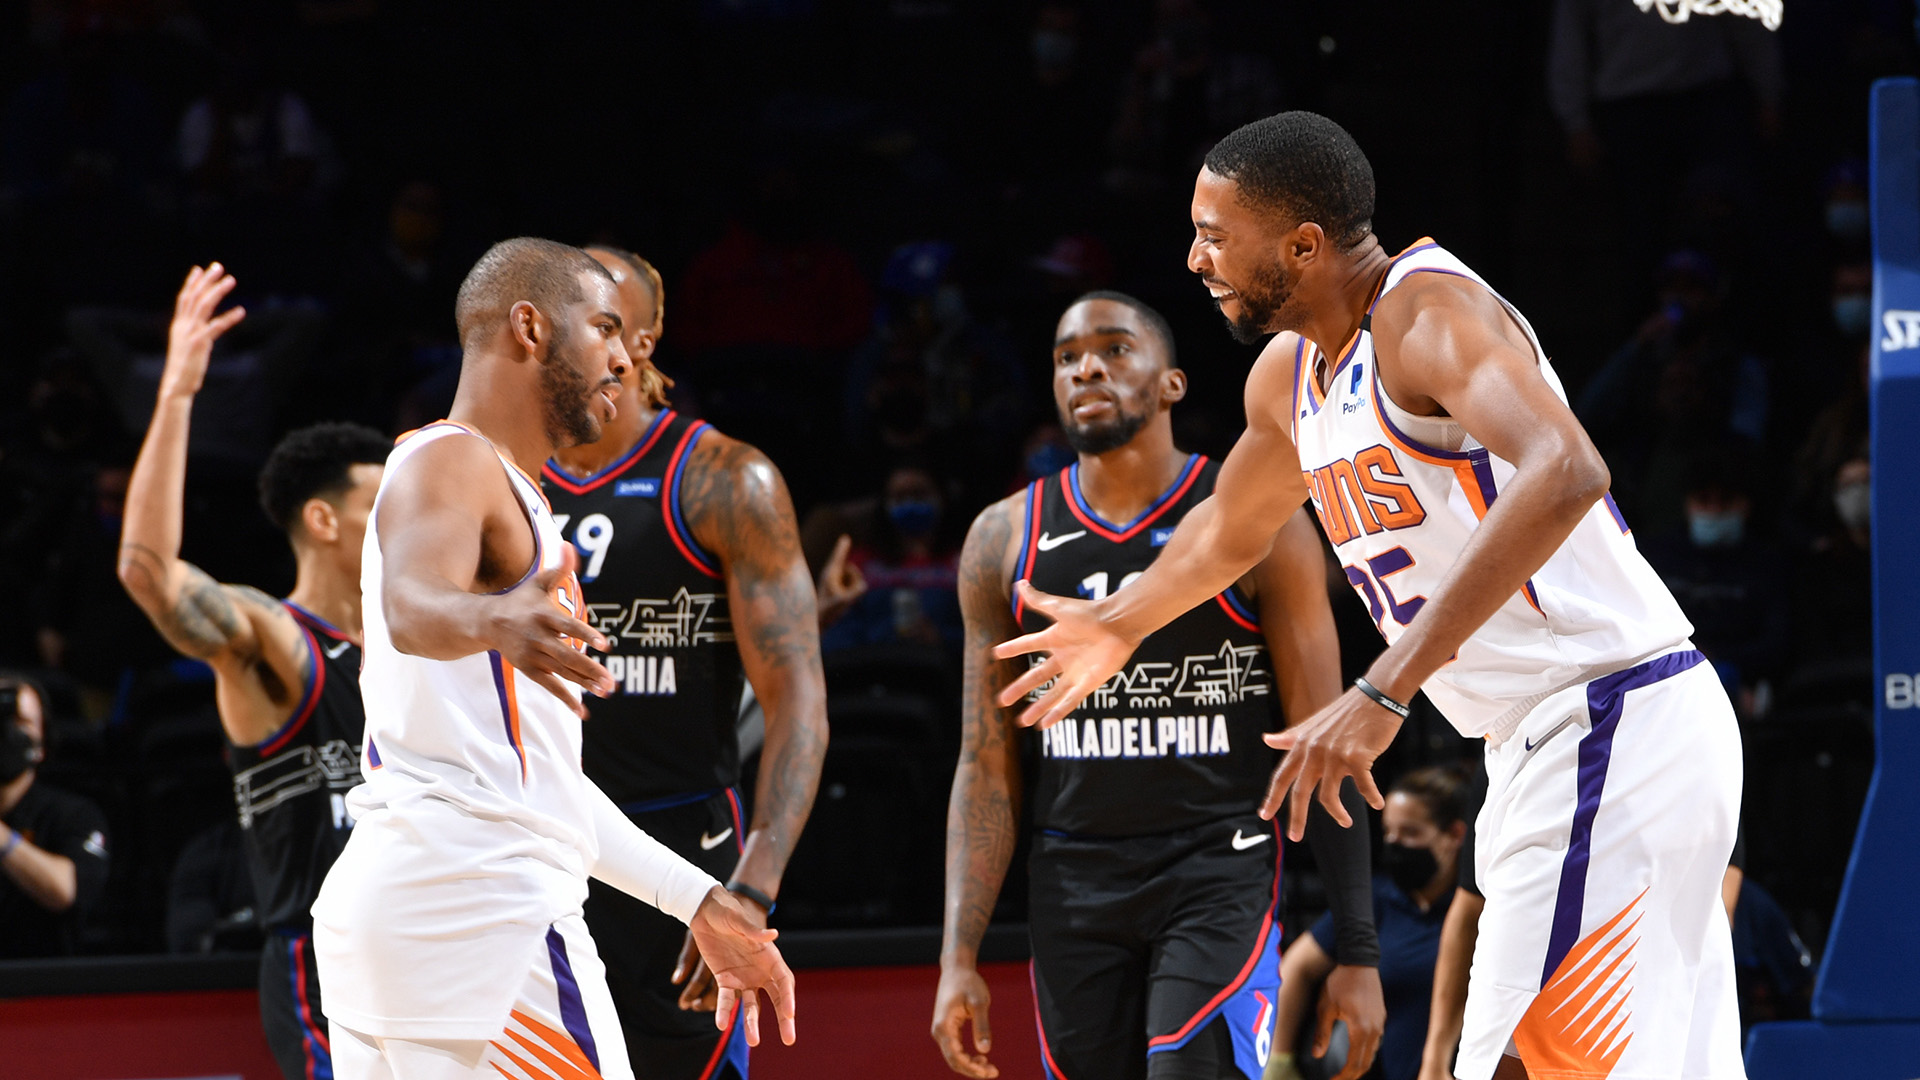 Suns outlast Sixers, spoil Embiid's huge game